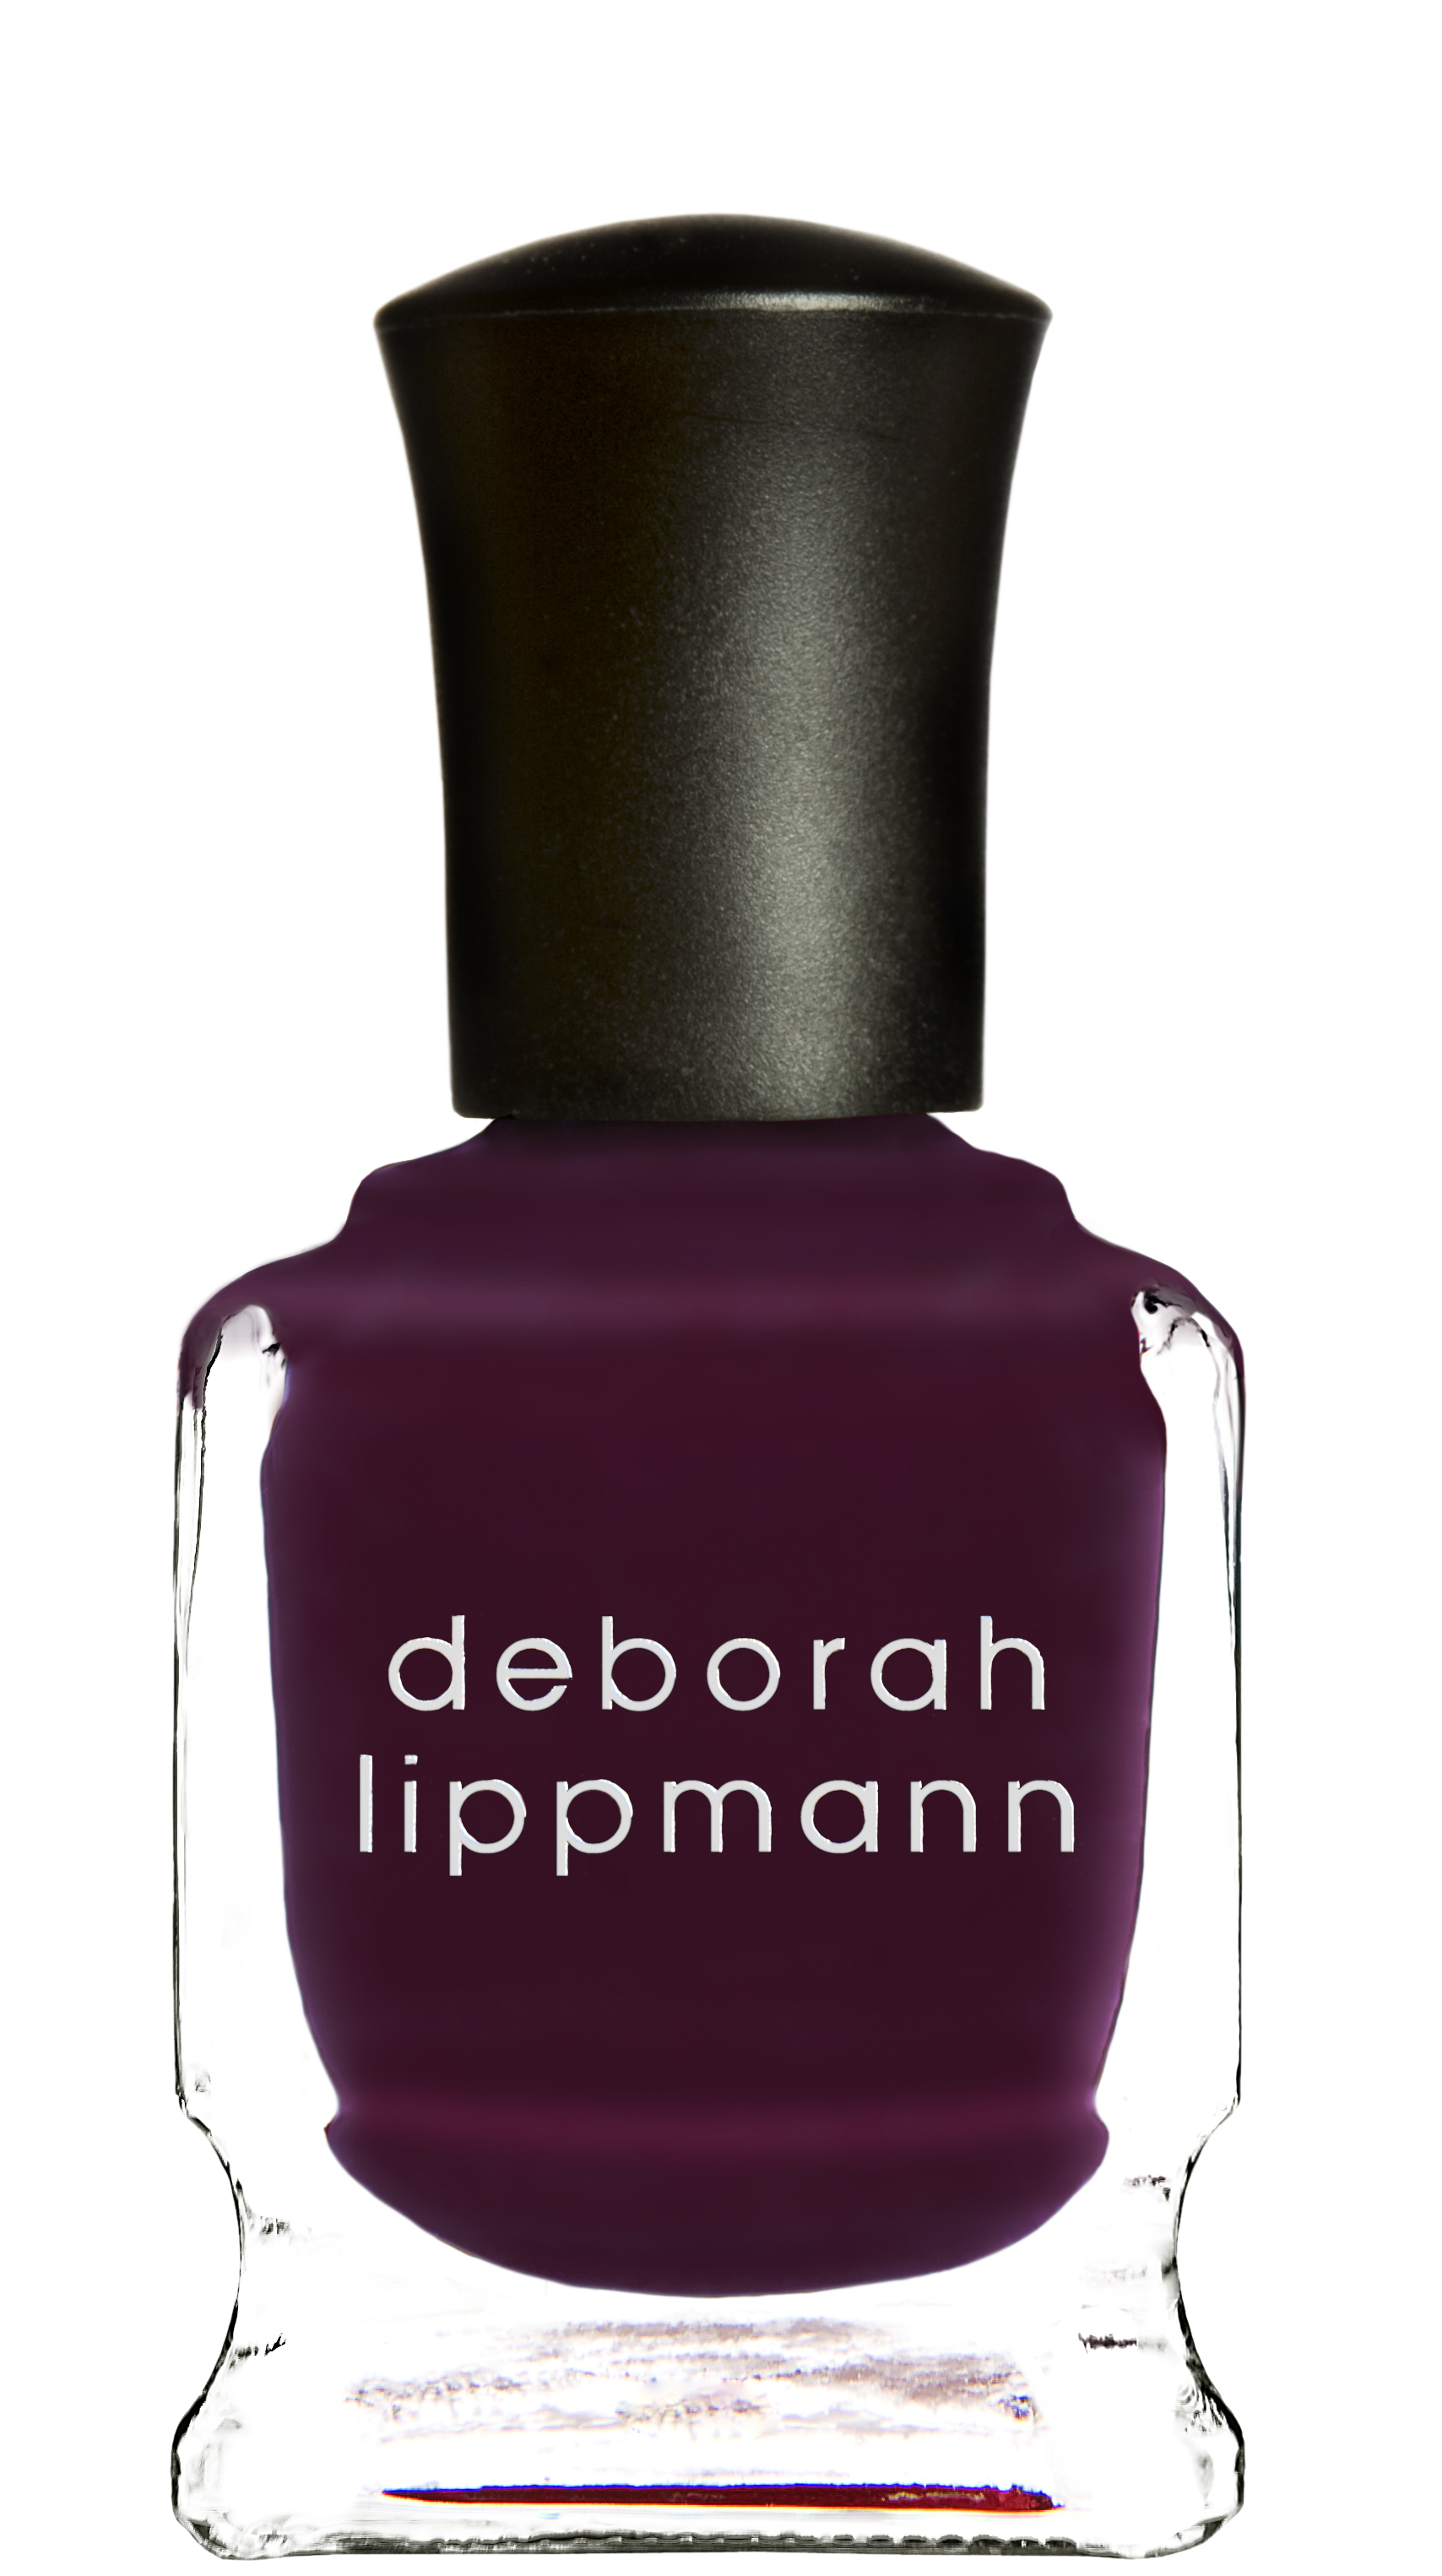 Deborah Lippmann лак для ногтей Miss Independent GLPC